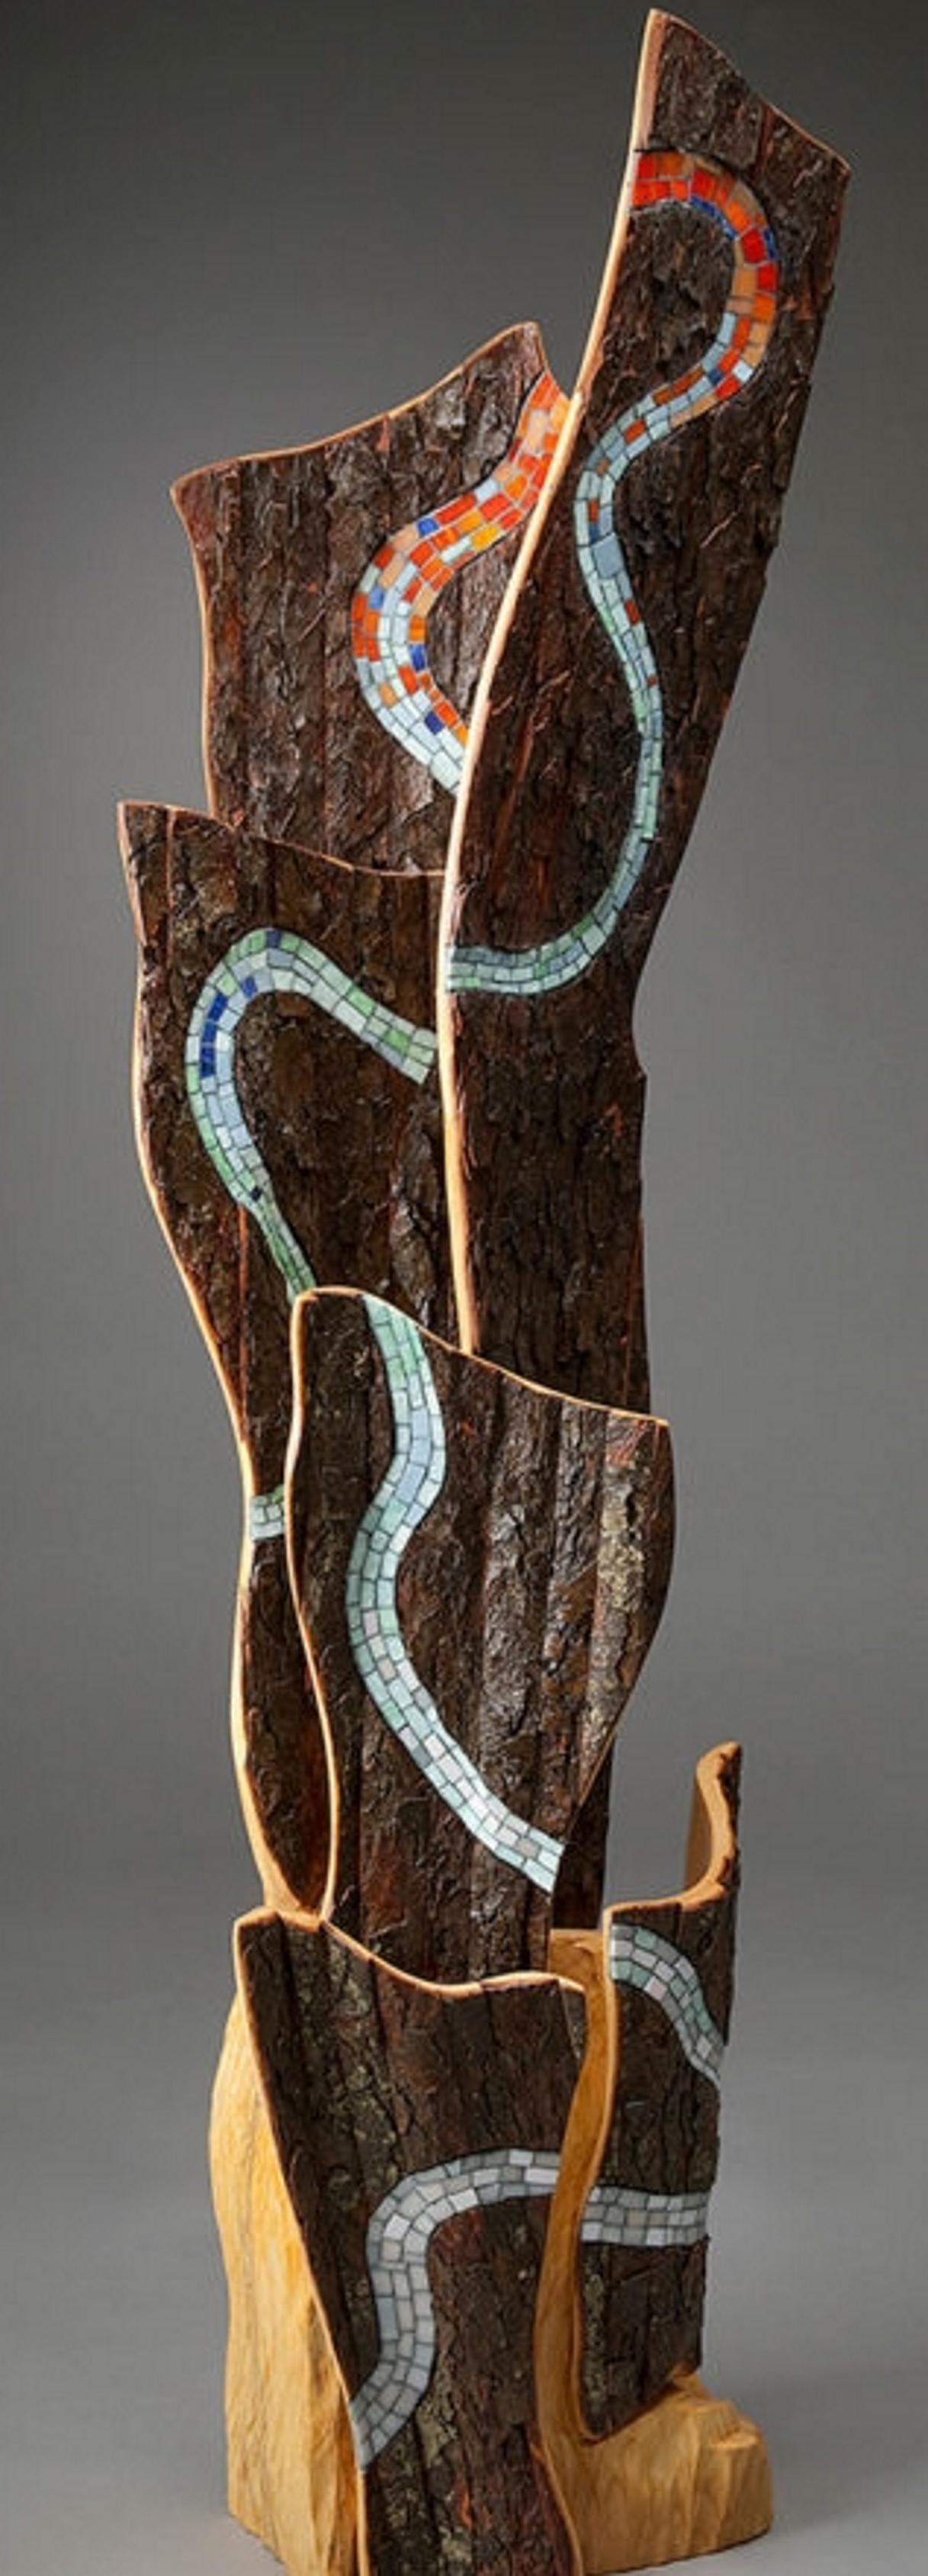 Zenith Gallery- Aaron Laux-Waters Pathway-2016-Wood with glass inlay- 66h x 29w x 15 d - $7,500.jpg